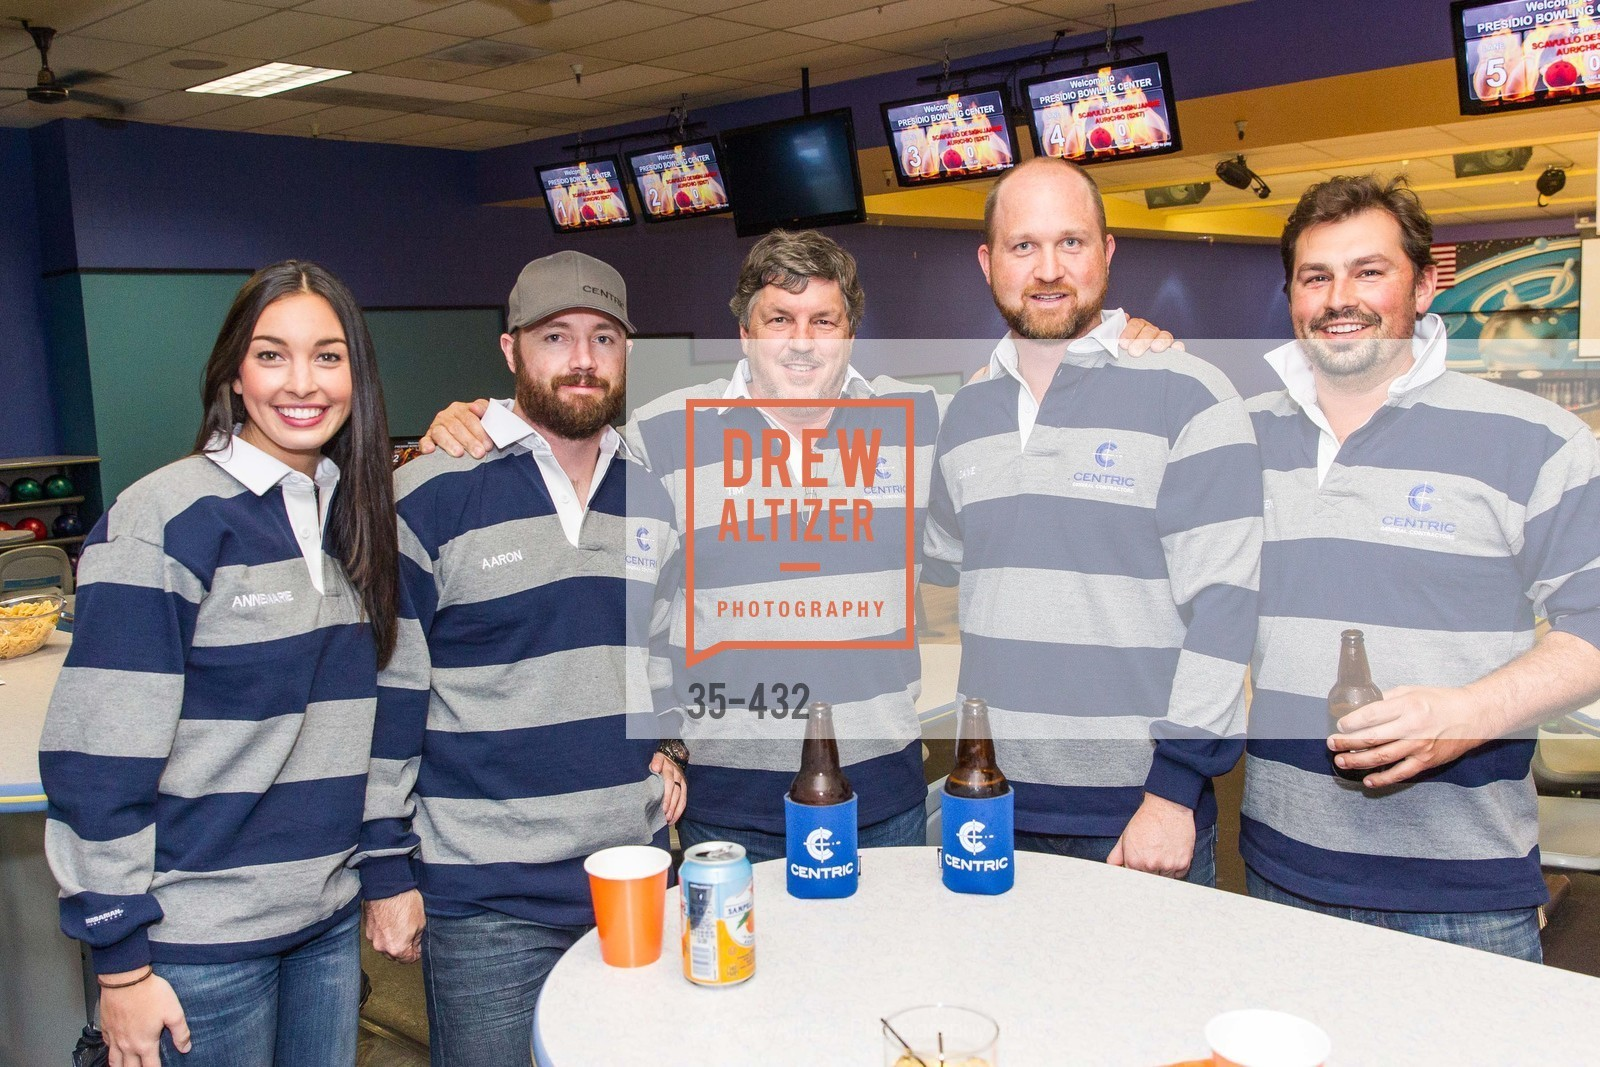 Annemarie Gresh, Aaron Botenhagen, Tim McDonald, Dave Riordan, Branden McDonald, ScavulloDesign Centric Builders Bowling Party, Presidio Bowl. 93 Moraga Ave, October 29th, 2015,Drew Altizer, Drew Altizer Photography, full-service event agency, private events, San Francisco photographer, photographer California